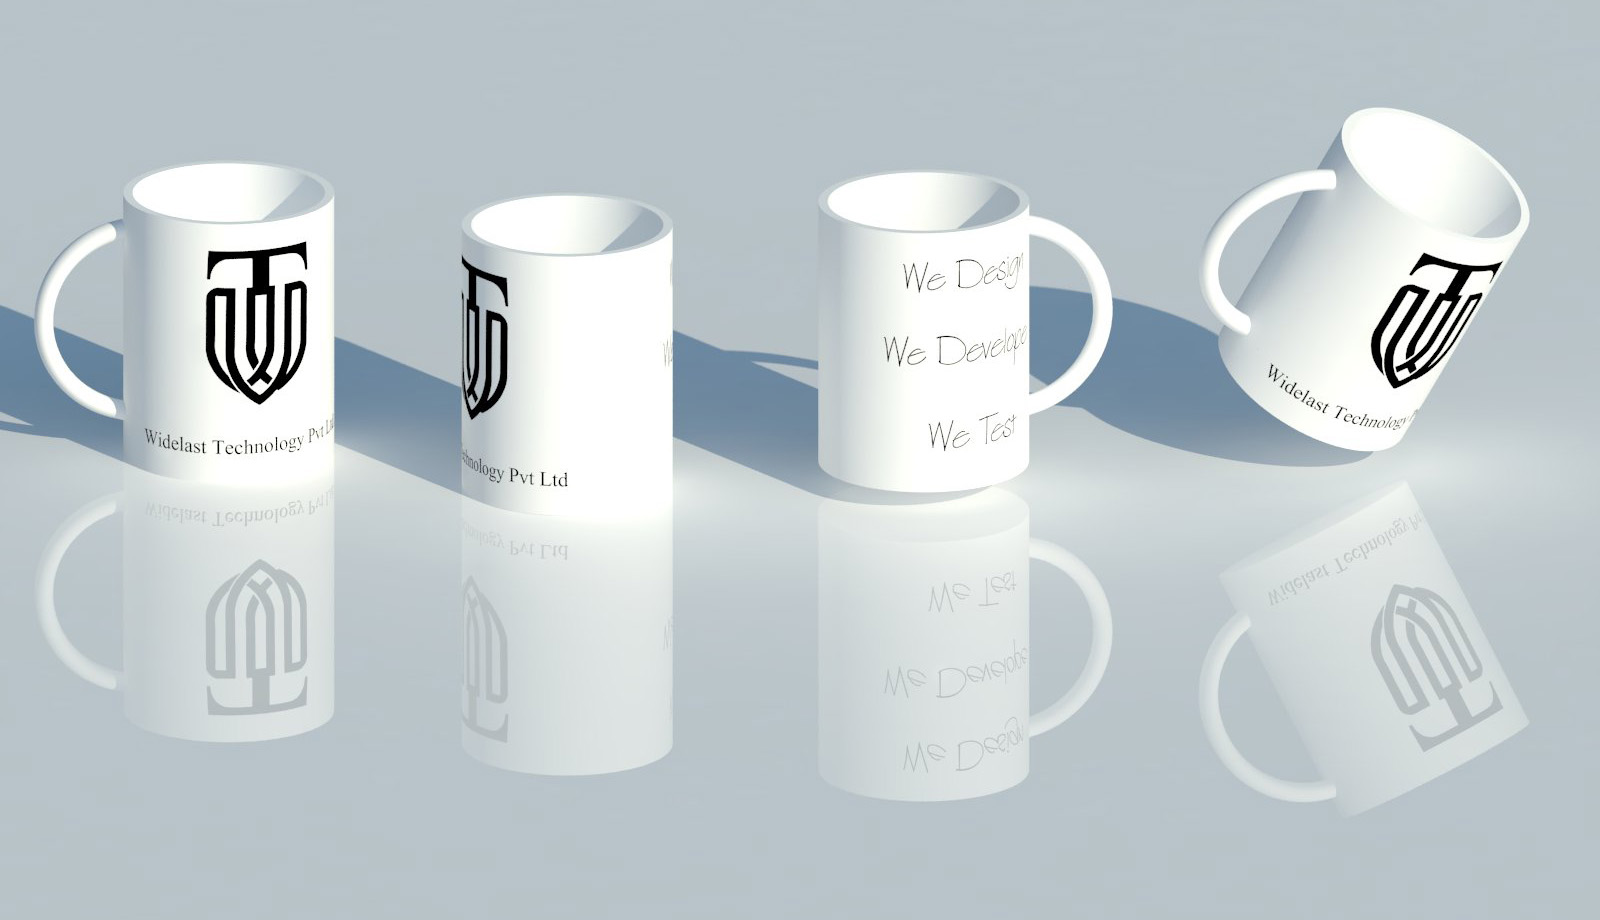 Widelast Technology Mug